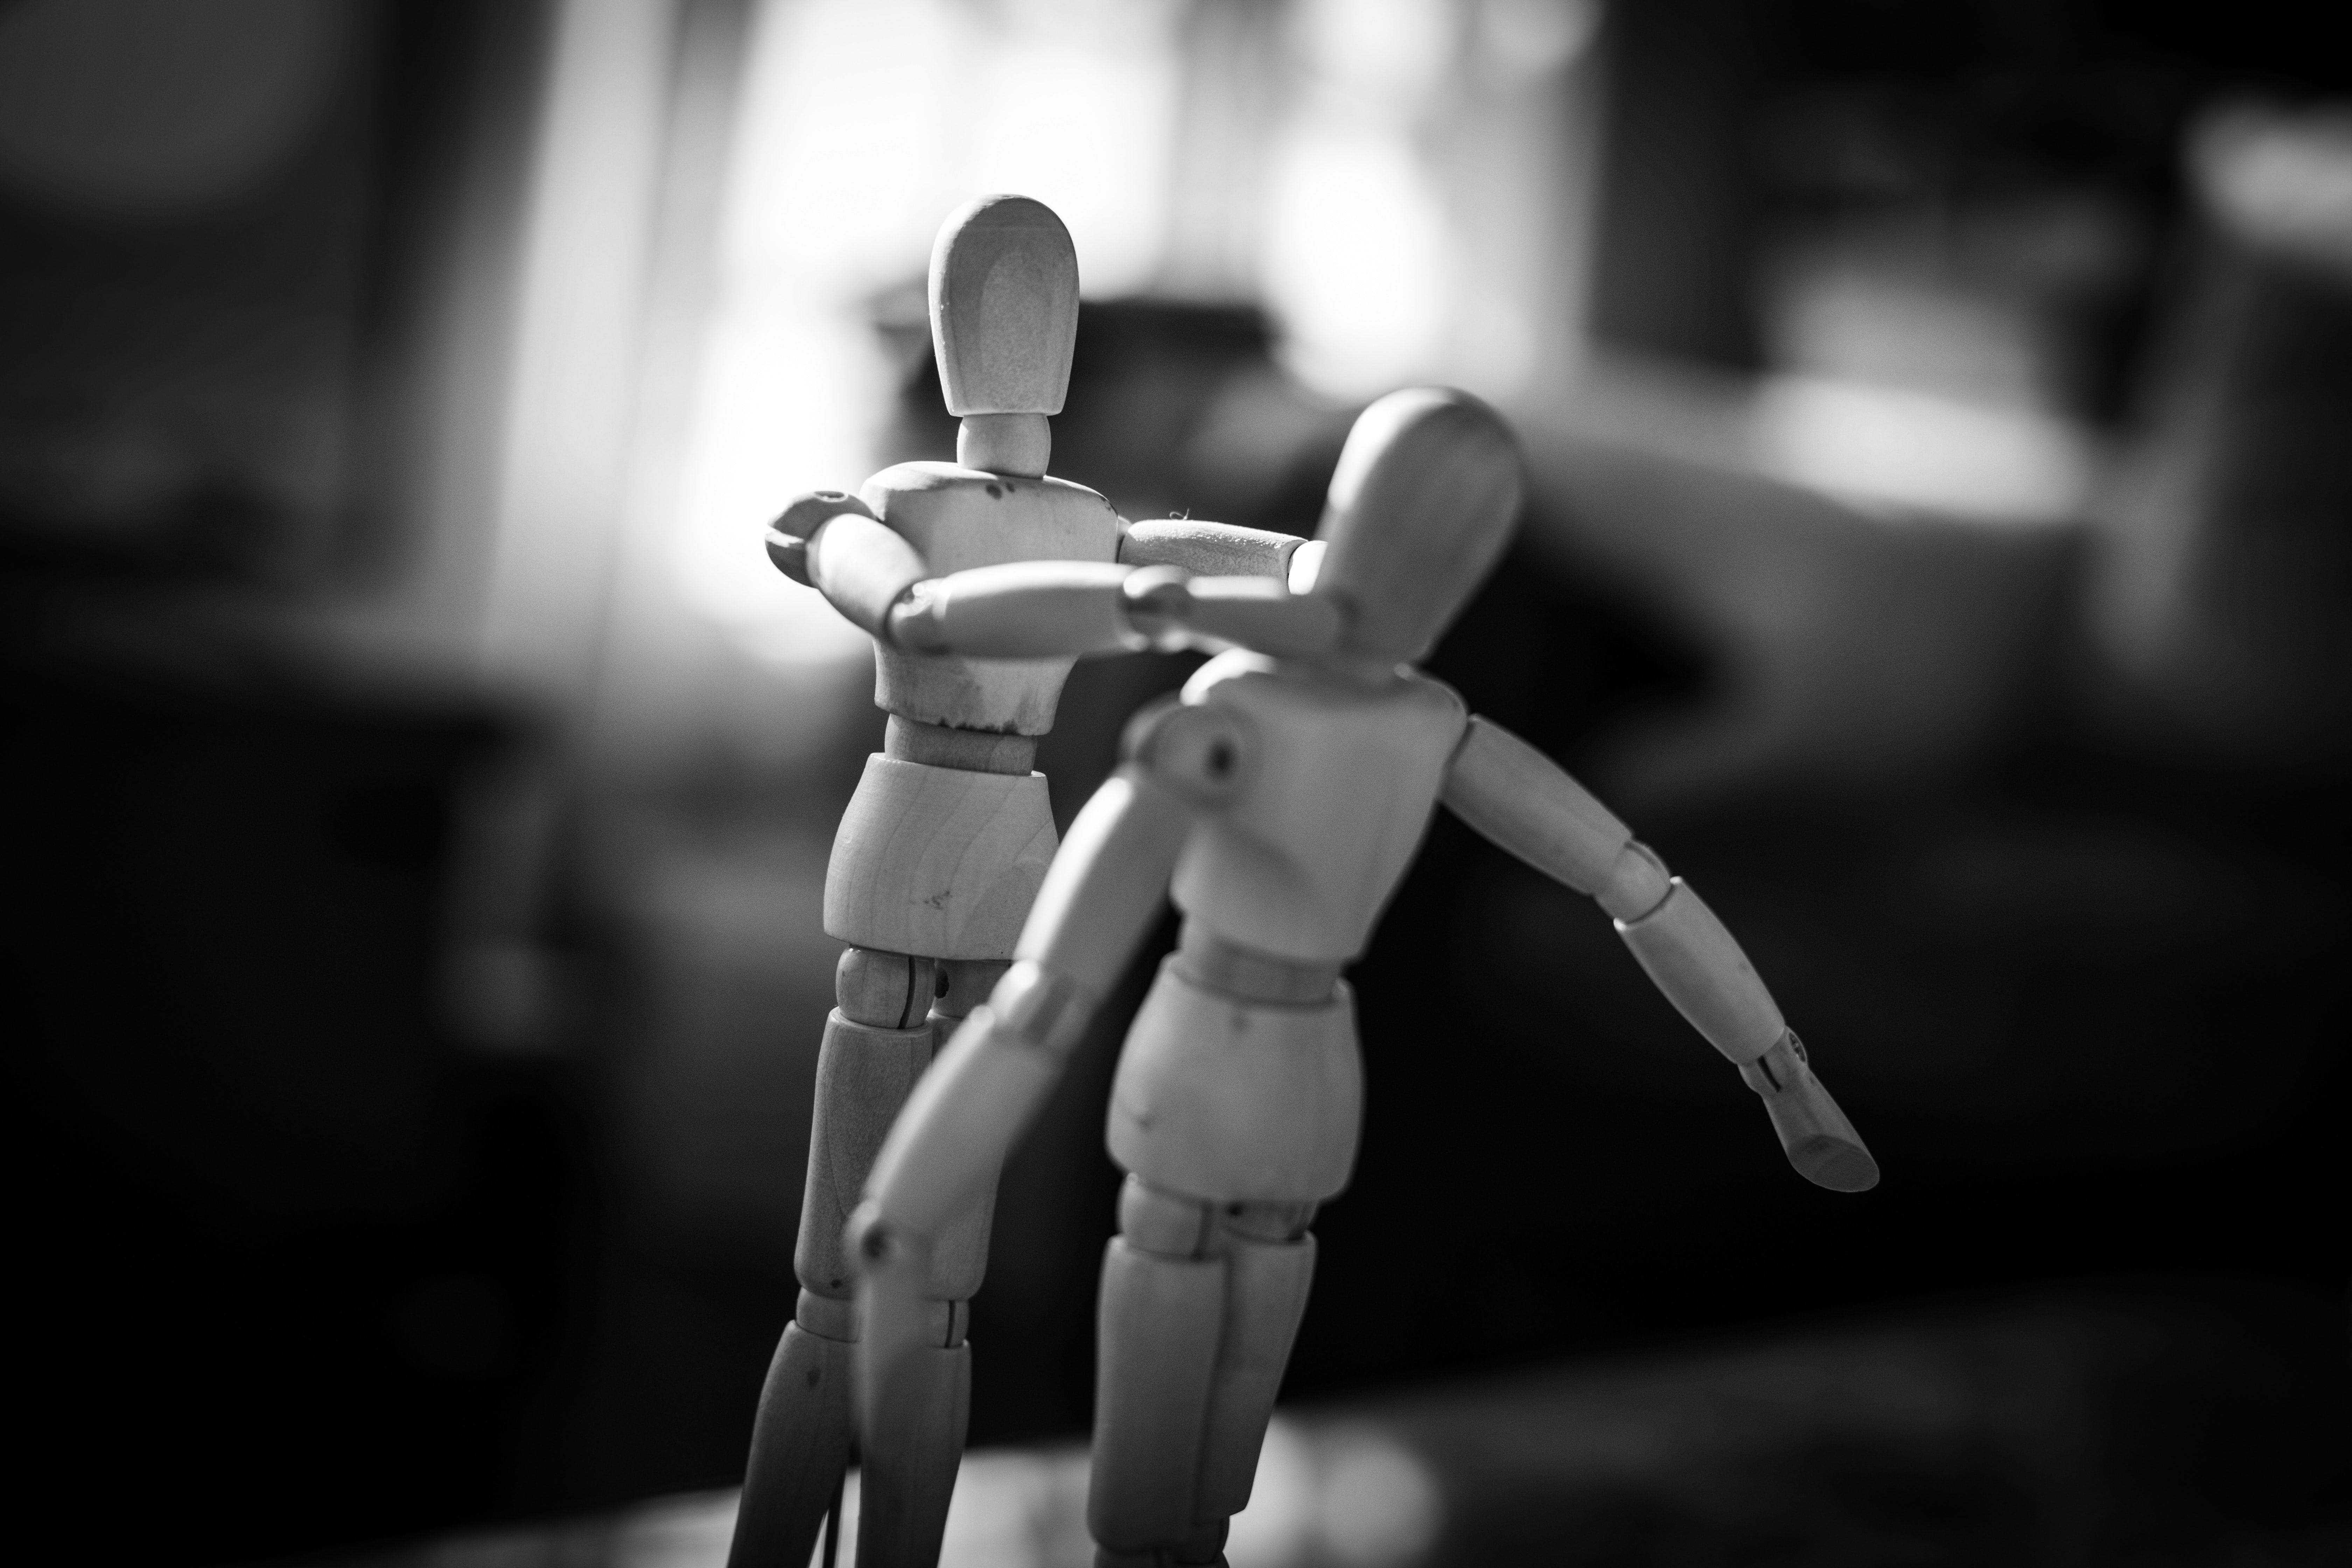 Two wooden mannequins standing in front of each other, the one on the left has its hands on the other's face. Photo courtesy of Charl Folscher on Unsplash.